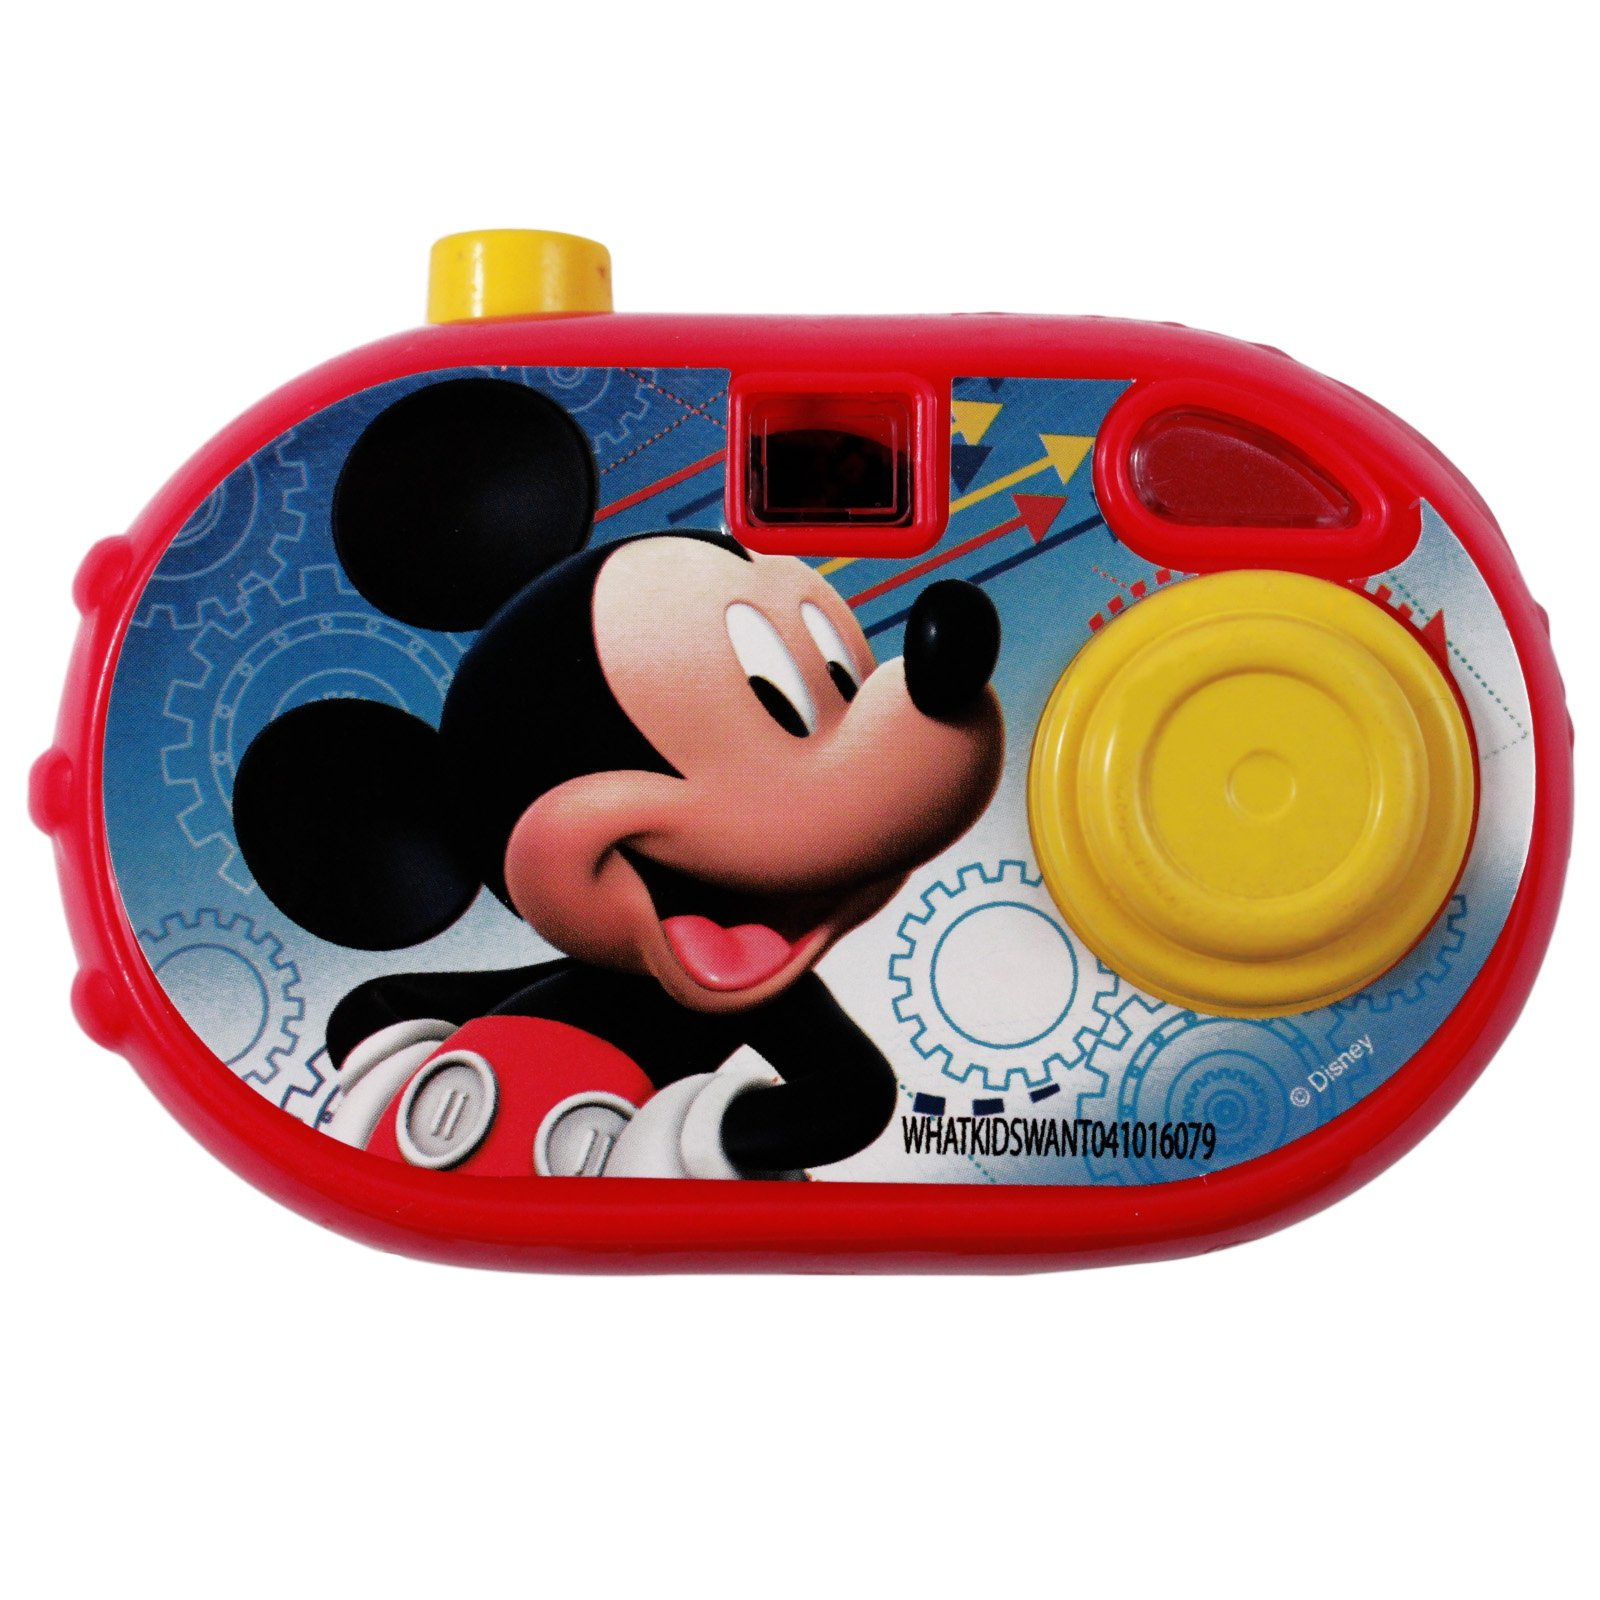 Disney Mickey Mouse Pretend Play Click Camera Toy Gift Party Favor - Red